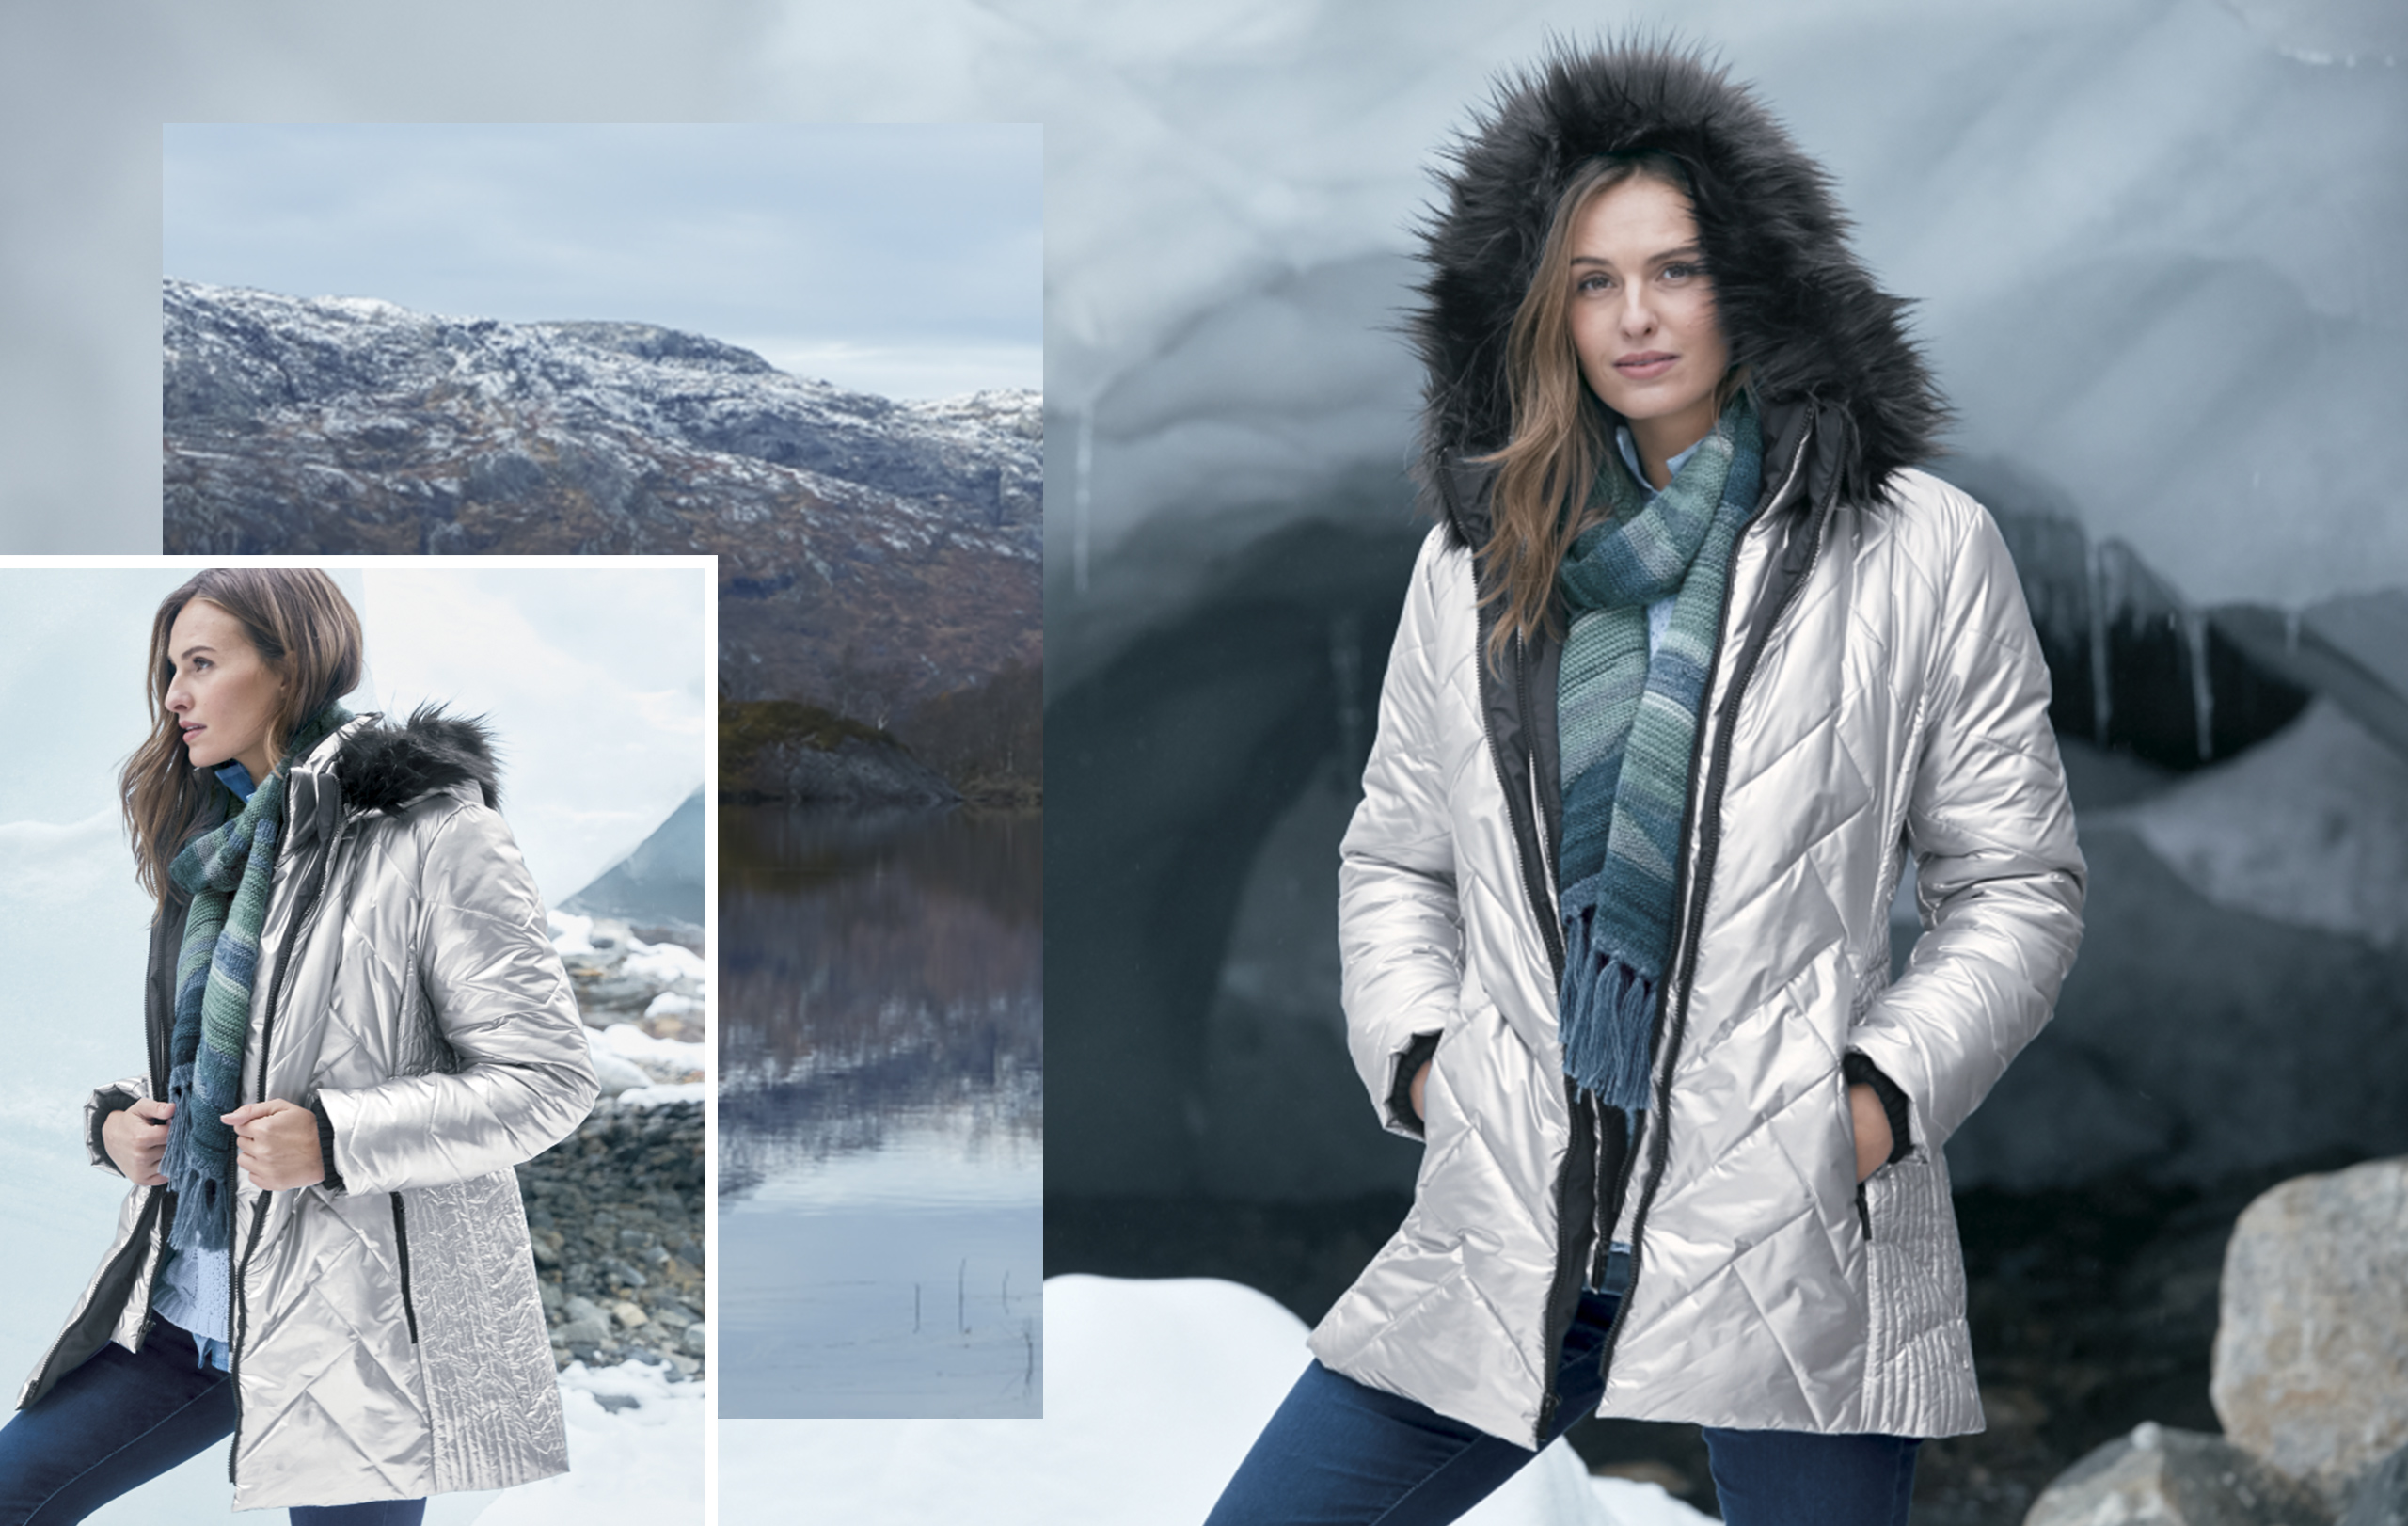 outerwear background image